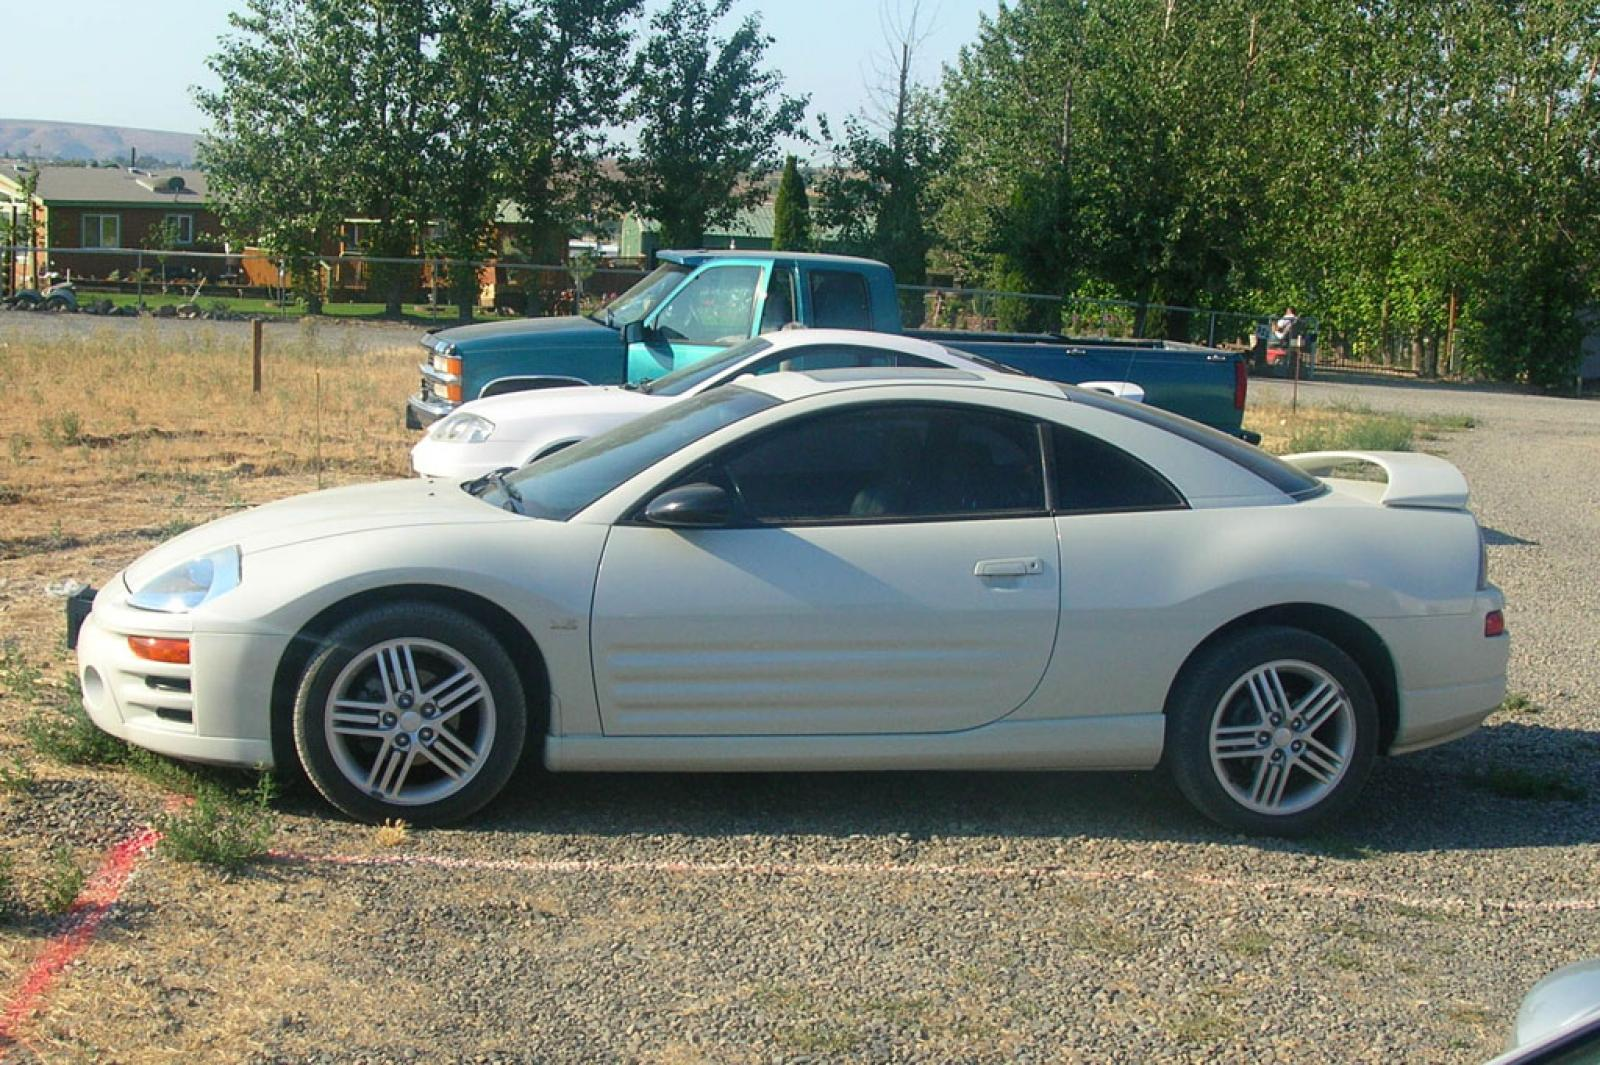 2000 Mitsubishi Eclipse >> 2003 Mitsubishi Eclipse - Information and photos - ZombieDrive